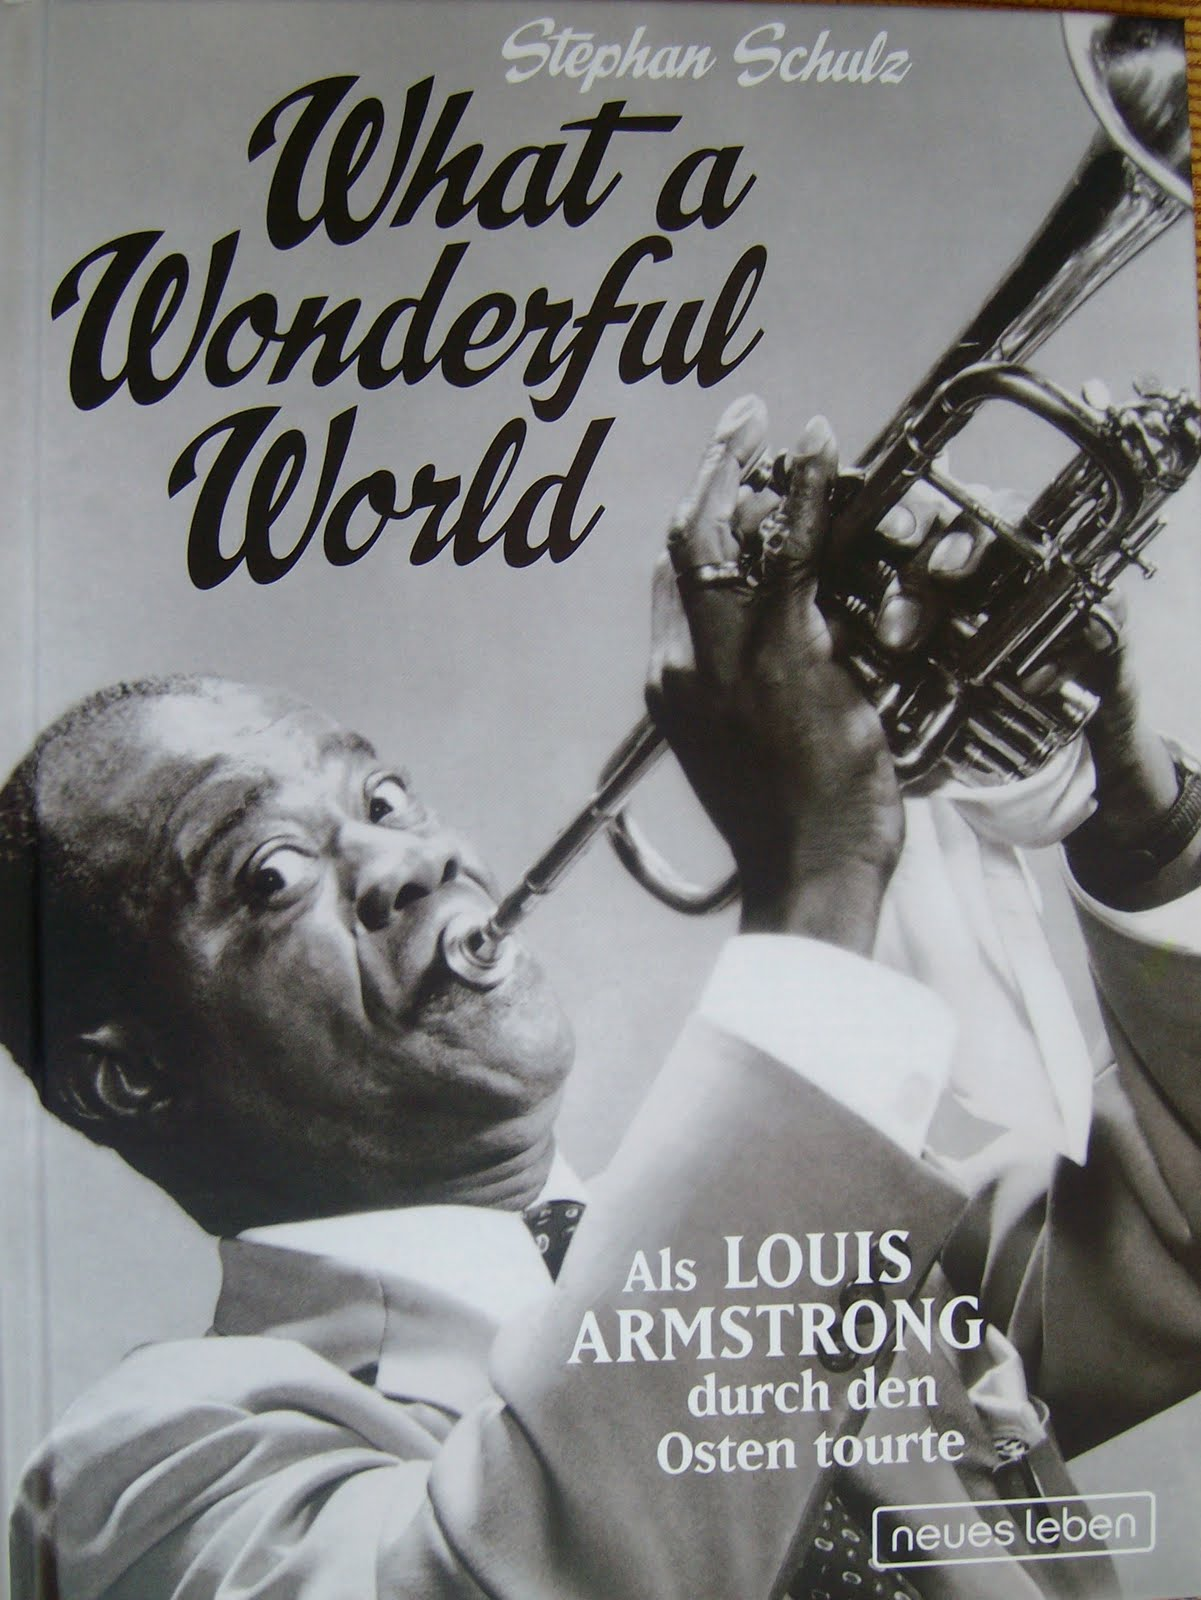 an introduction to the life and music by louis armstrong Louis armstrong (august 4, 1901 - july 6, 1971) nicknamed satchmo or pops, was an american jazz trumpeter and singer from new orleans, louisiana coming to prominence in the 1920s as an inventive trumpet and cornet player, armstrong was a foundational influence in jazz, shifting the focus of the music from collective improvisation to solo.